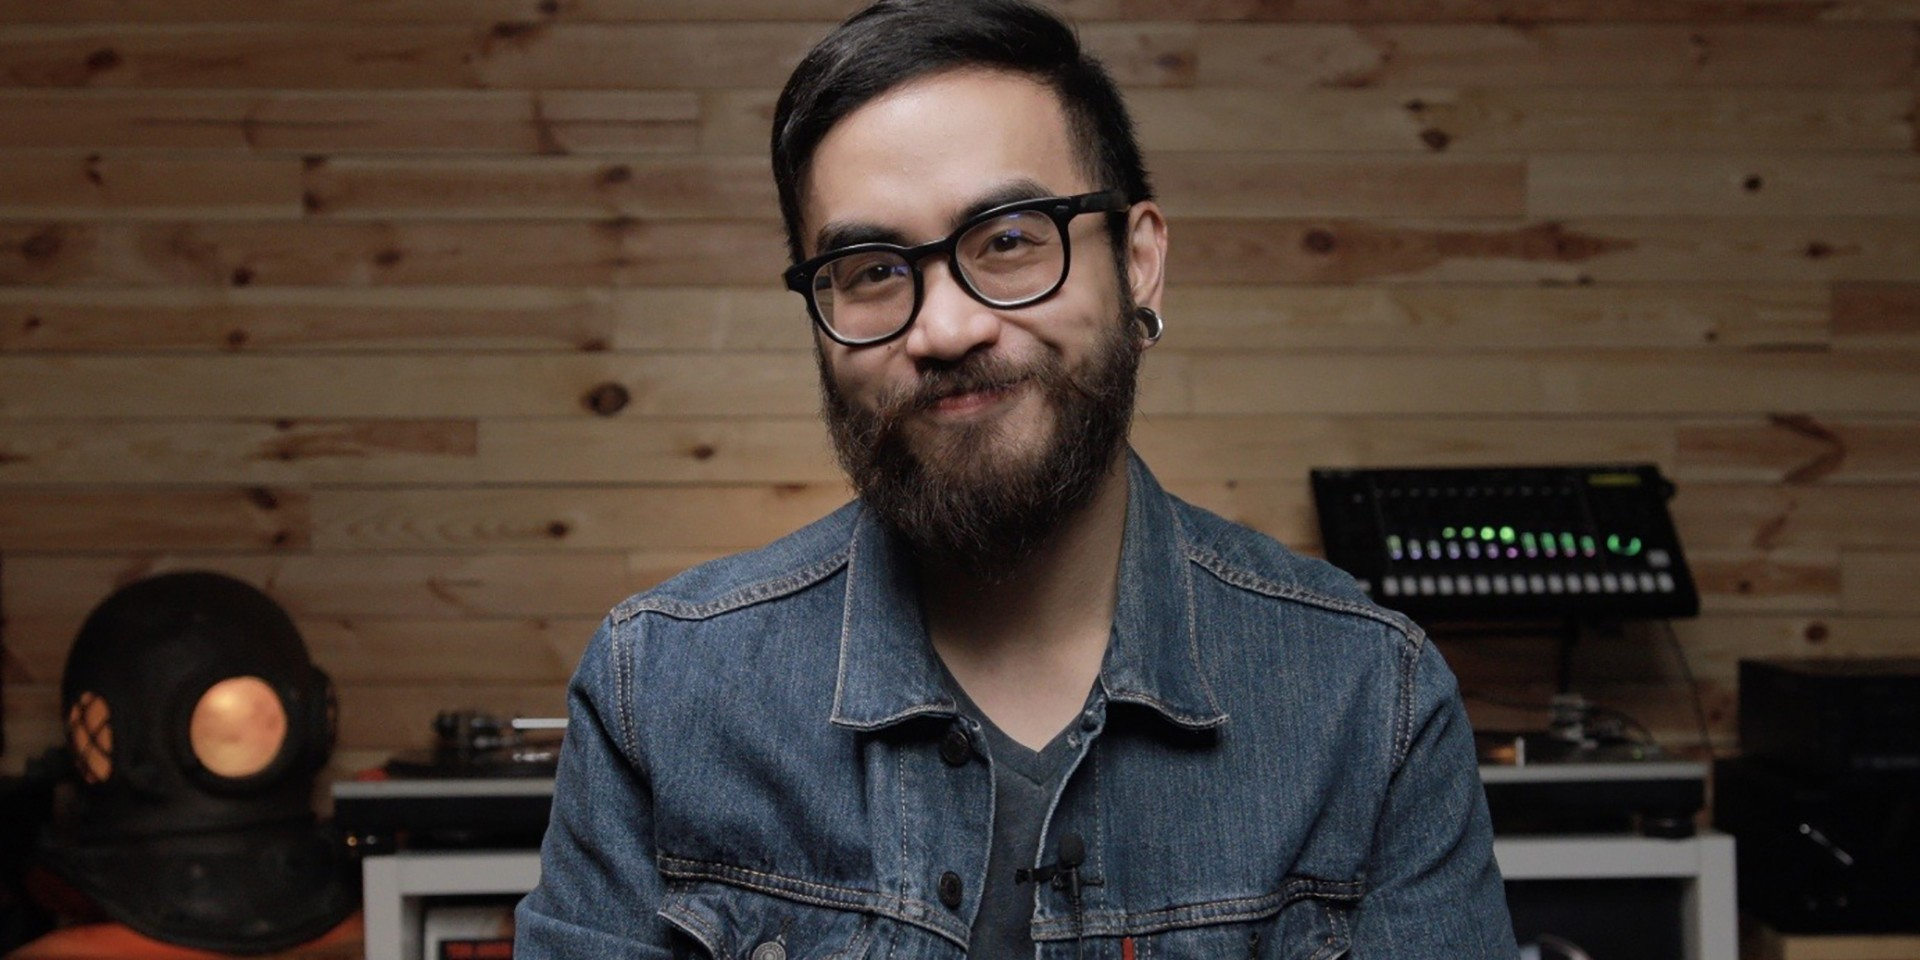 """""""My rules are no work on weekends, stick to nine-hour workday"""": DJ Joey Santos on working from home"""